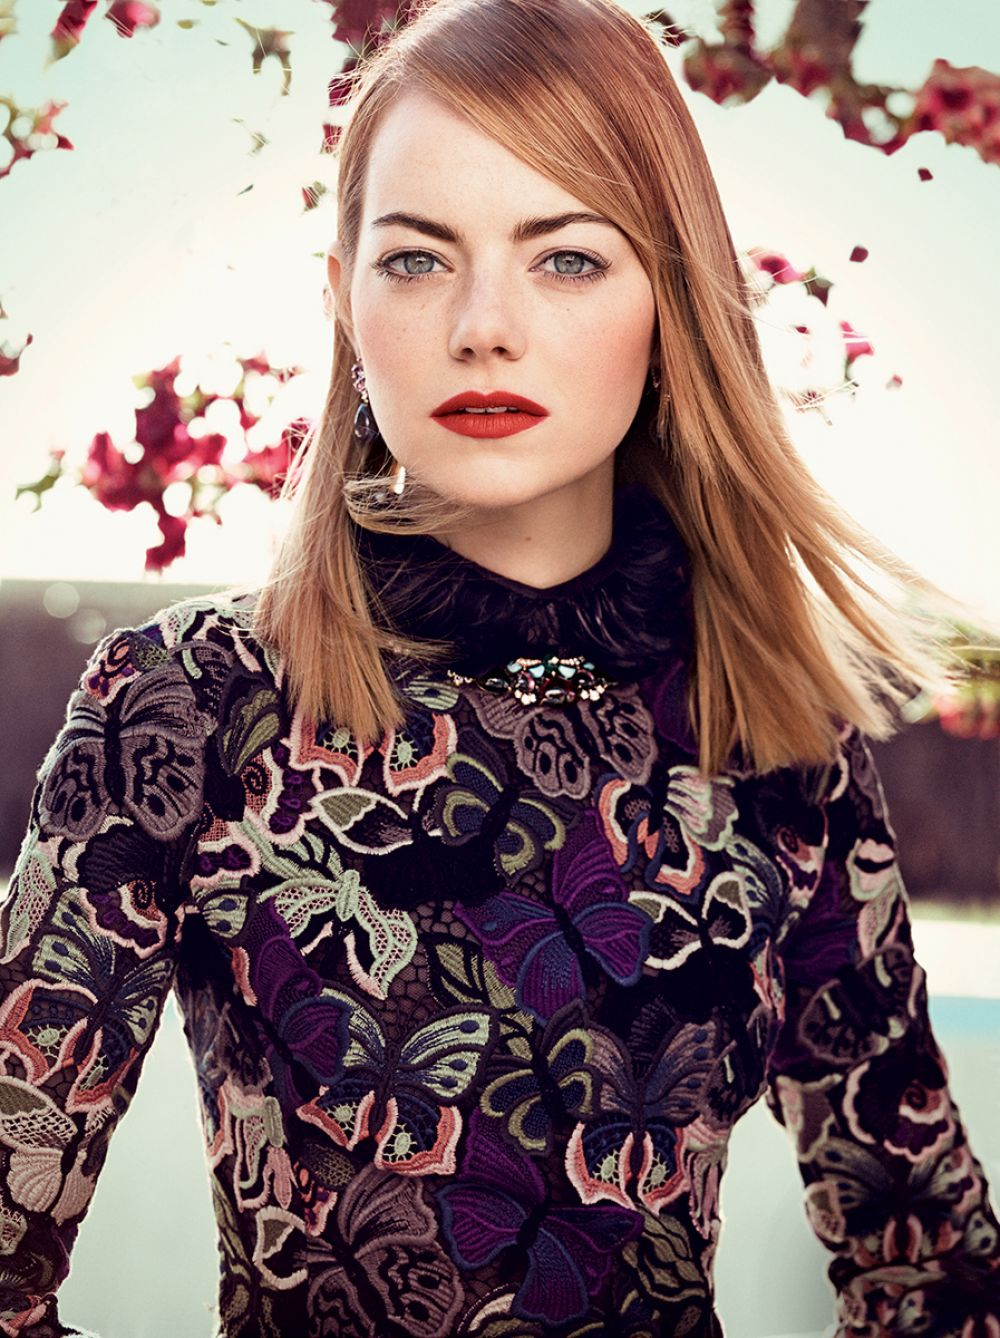 Emma Stone At Craig McDean Photoshoot For 'Vogue' May 2014 ...